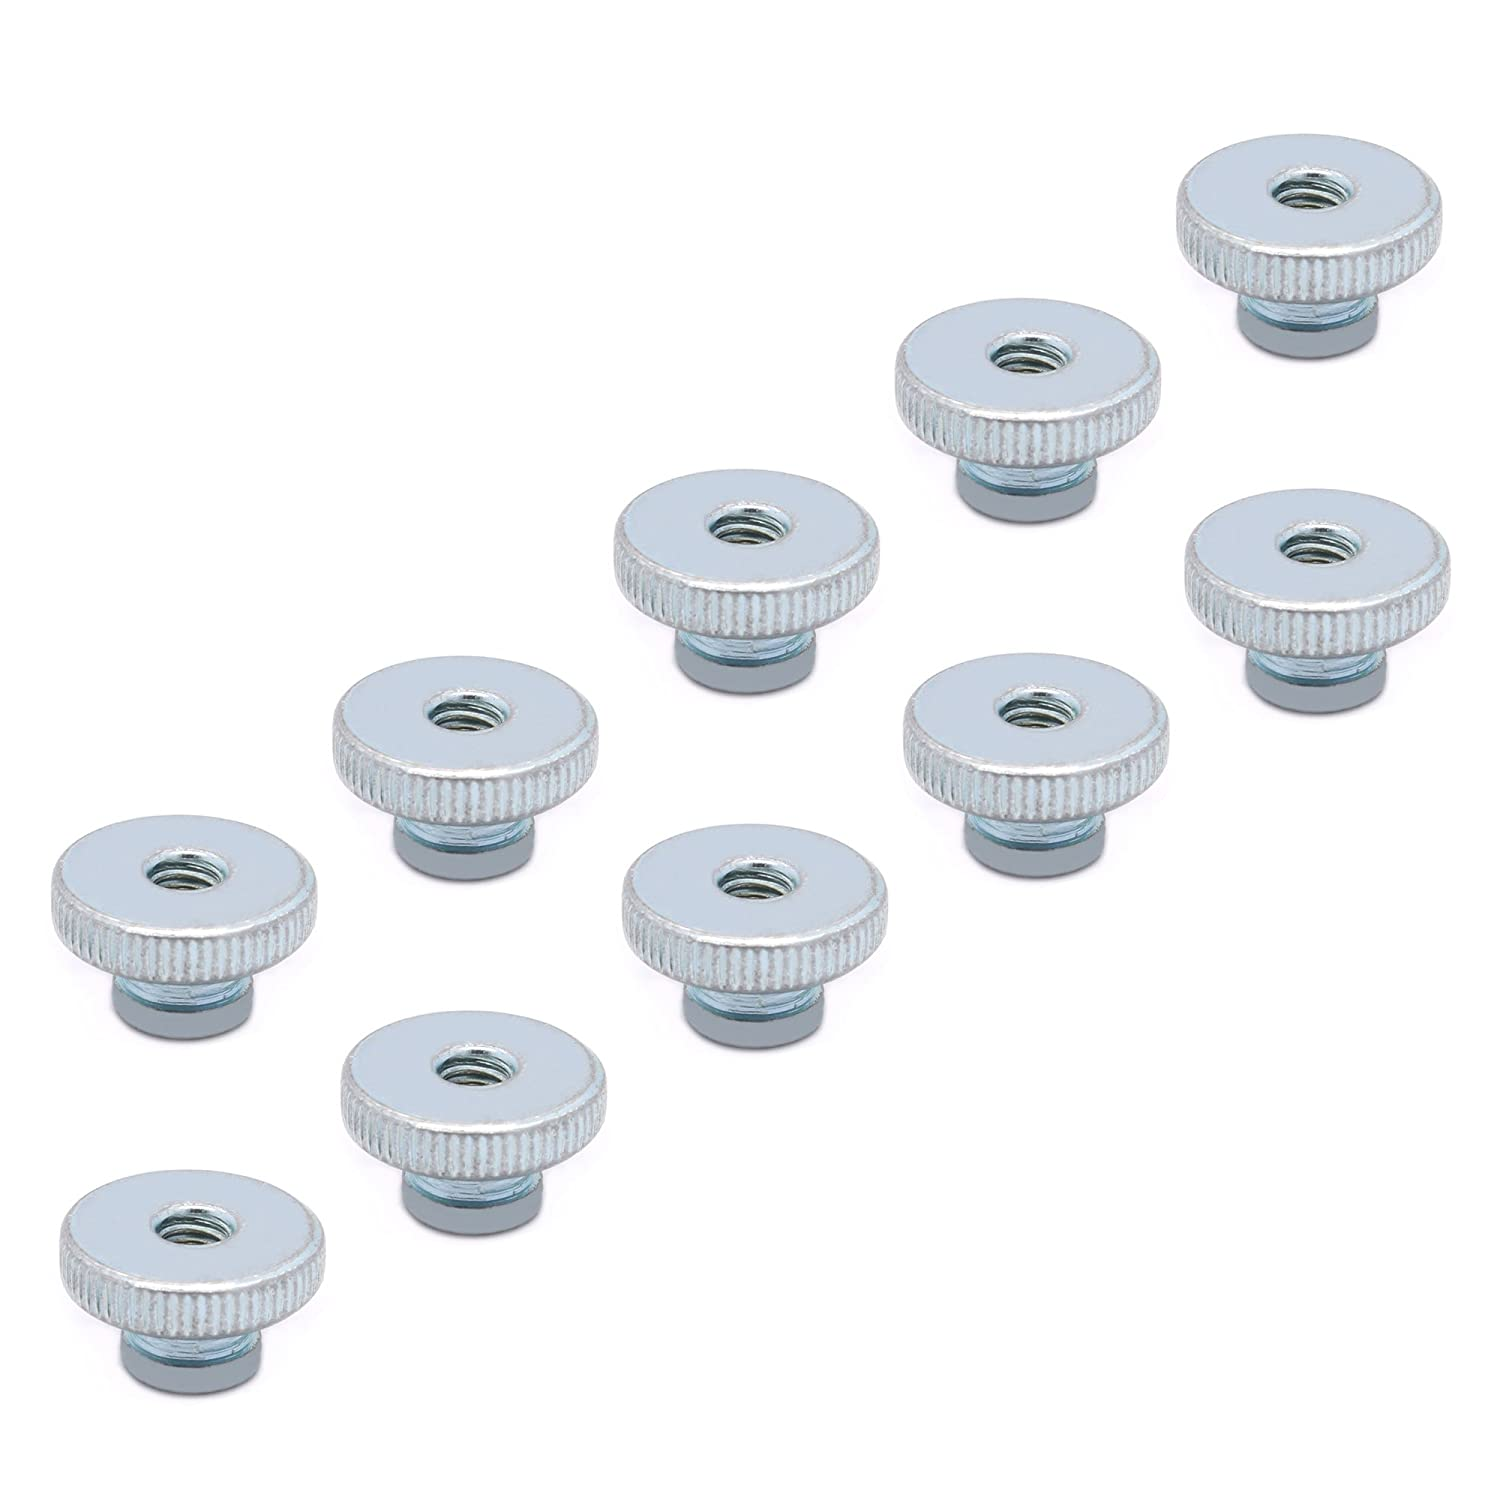 HUABAN 10pcs M3 Stainless Steel Adjustment Screw Thumb Nuts Part for Heated Bed 3D Printers Parts